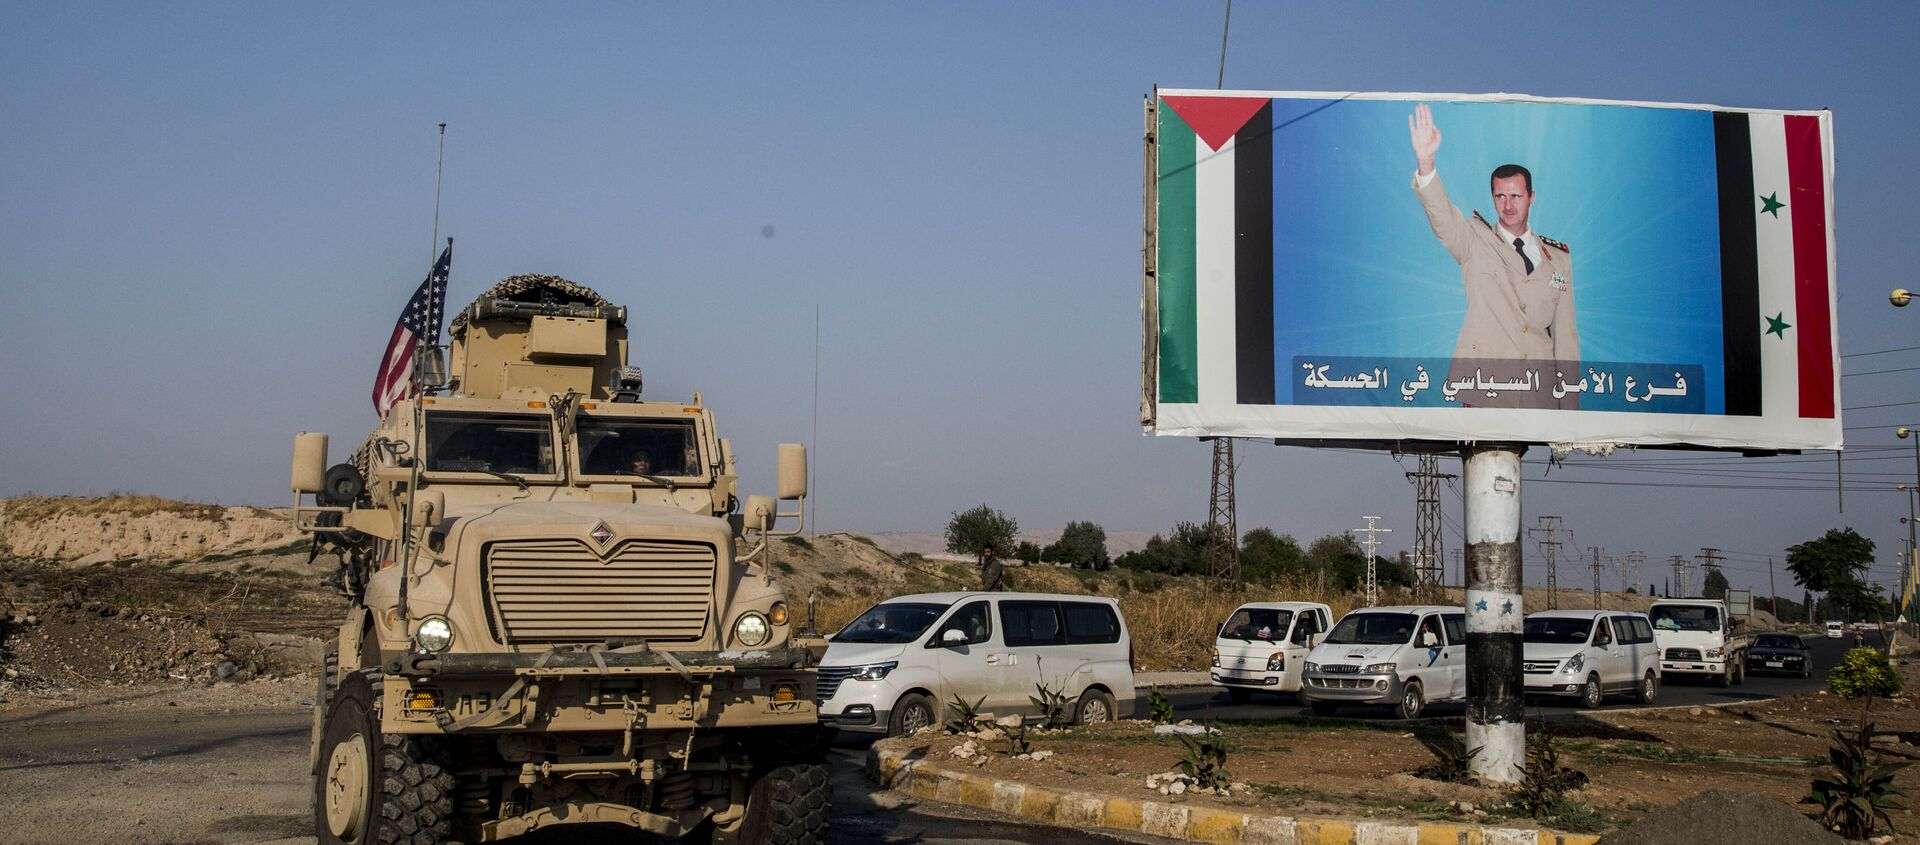 FILE - In this Saturday, 26 October 2019 file photo, a US military vehicle drives south of the northeastern city of Qamishli, likely heading to the oil-rich Deir el-Zour area where there are oil fields, or possibly to another base nearby, as it passes by a poster showing Syrian President Bashar Assad. - Sputnik International, 1920, 13.10.2020